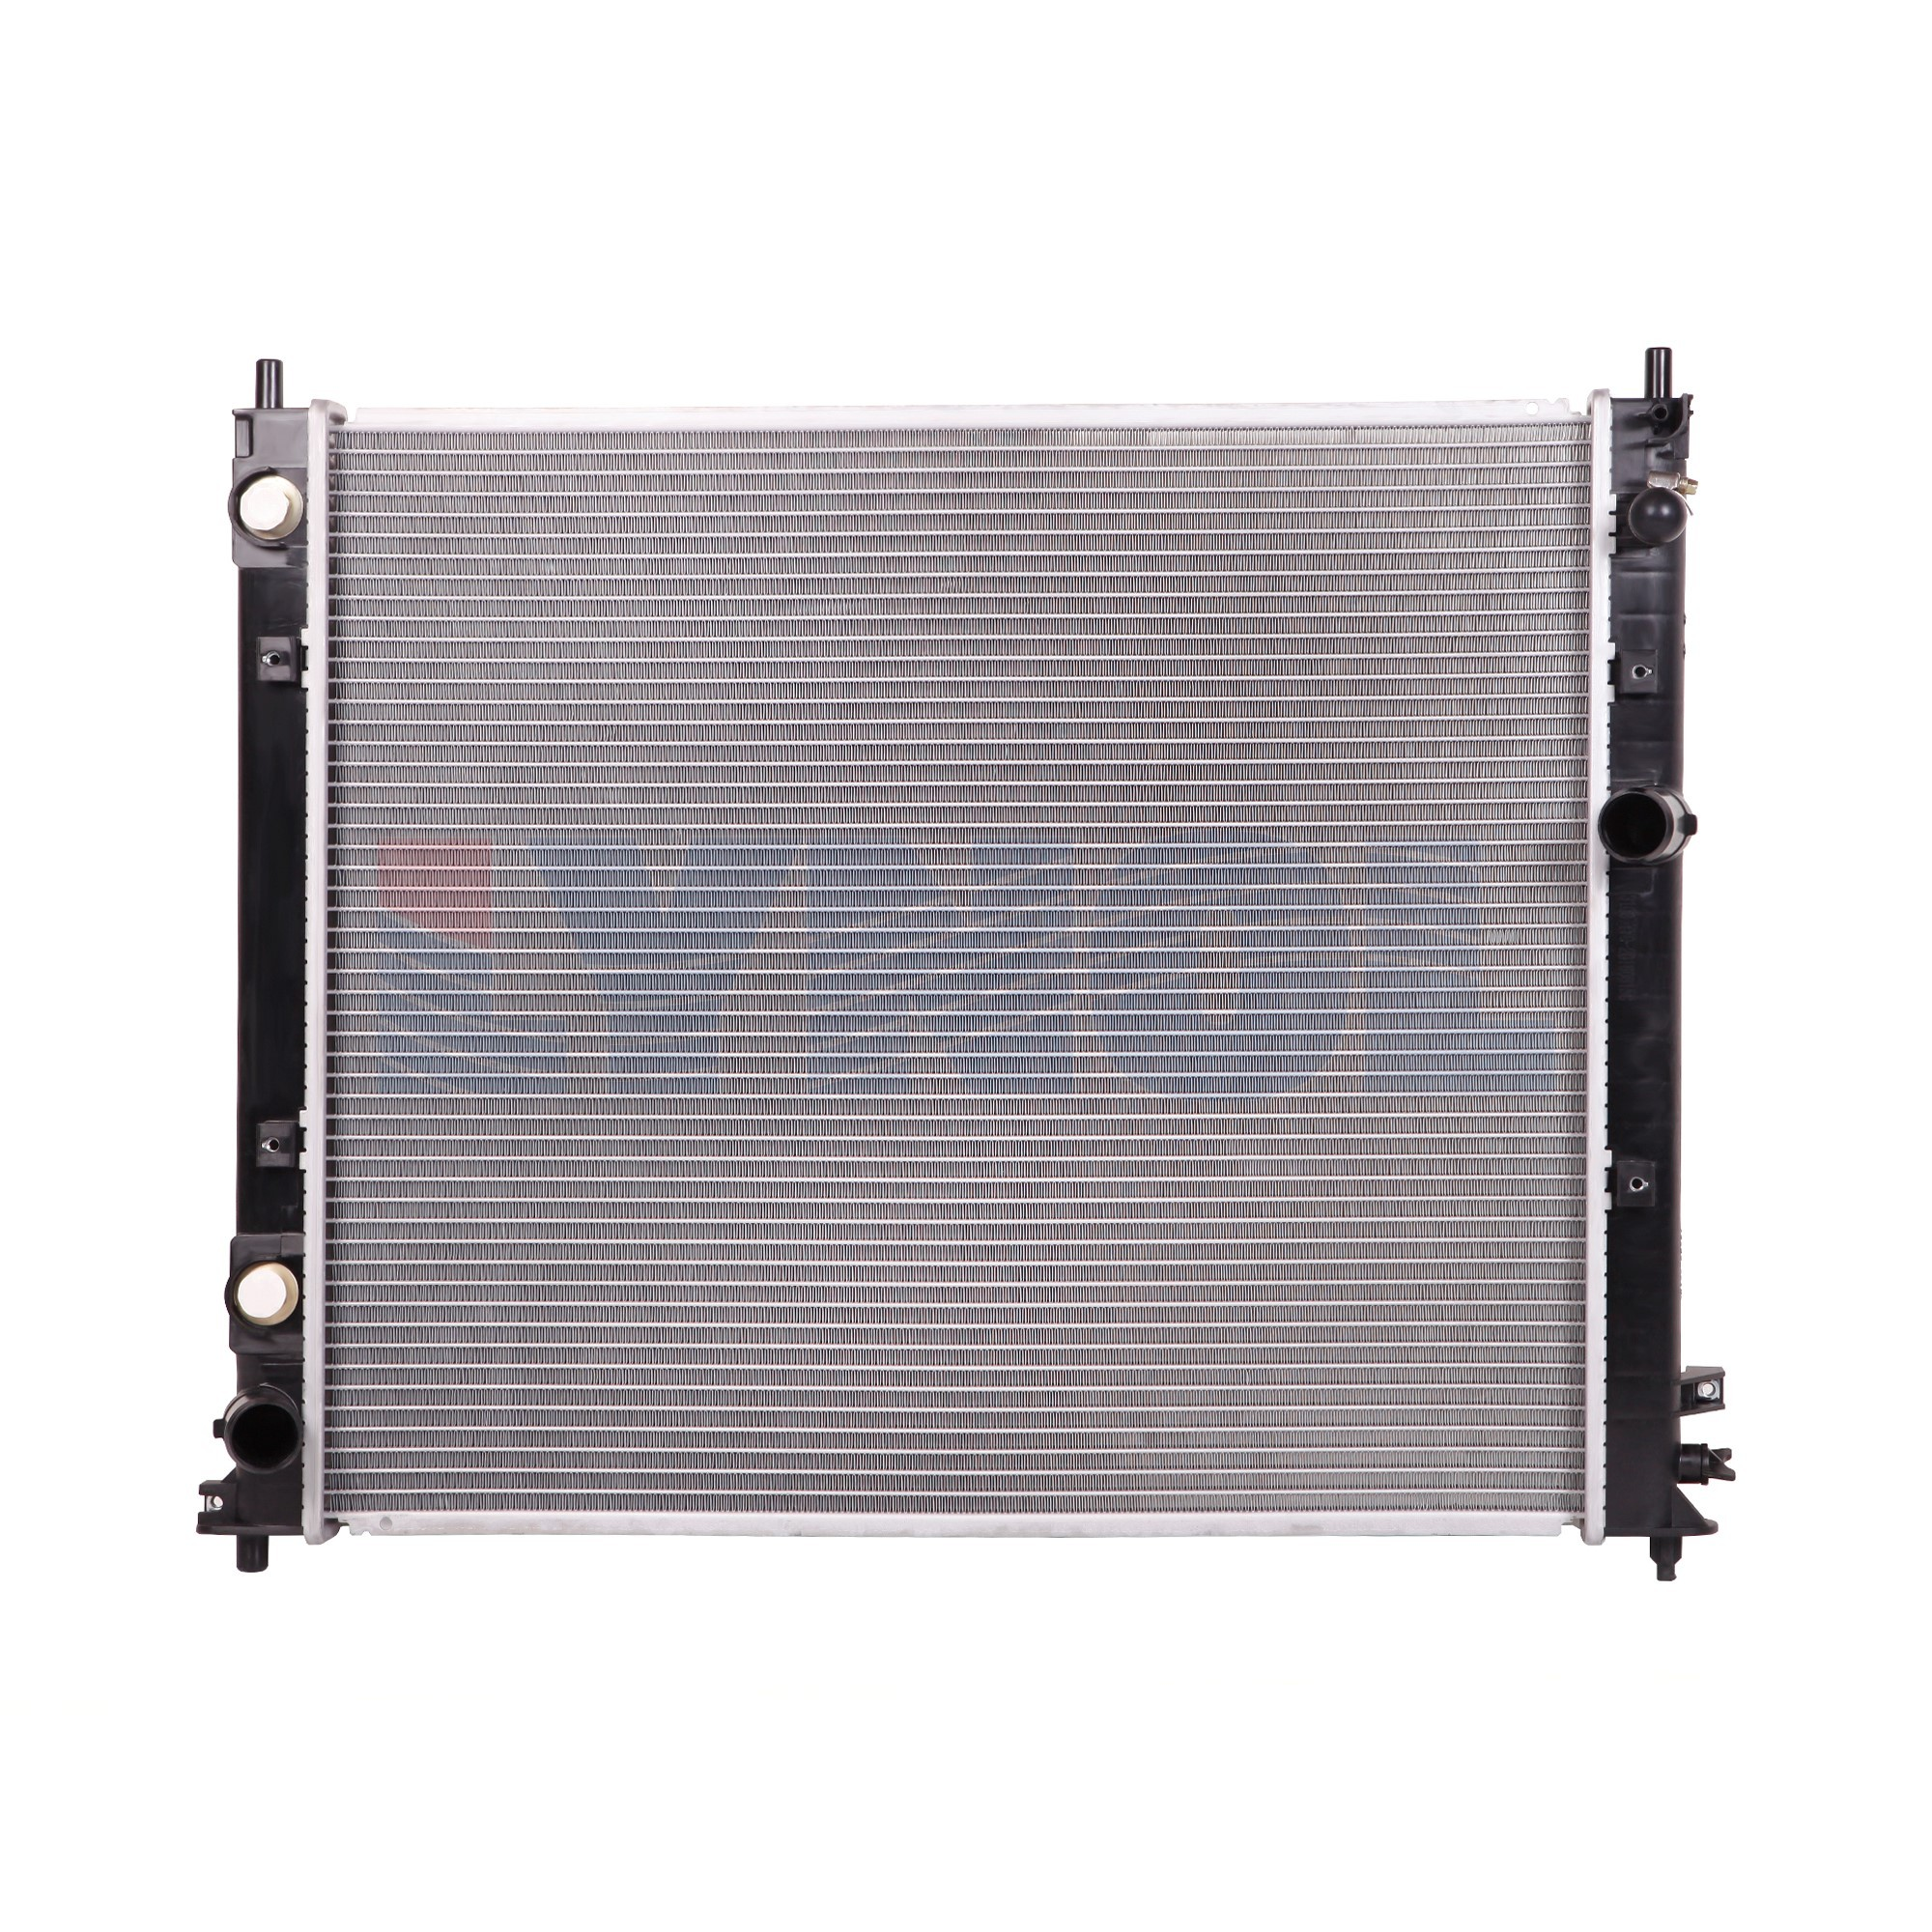 13108 - RADIATOR  - 08-14 CAD CTS A/T 3.6L W/DIRECT FUEL INJECT RADIATOR PT/AC..